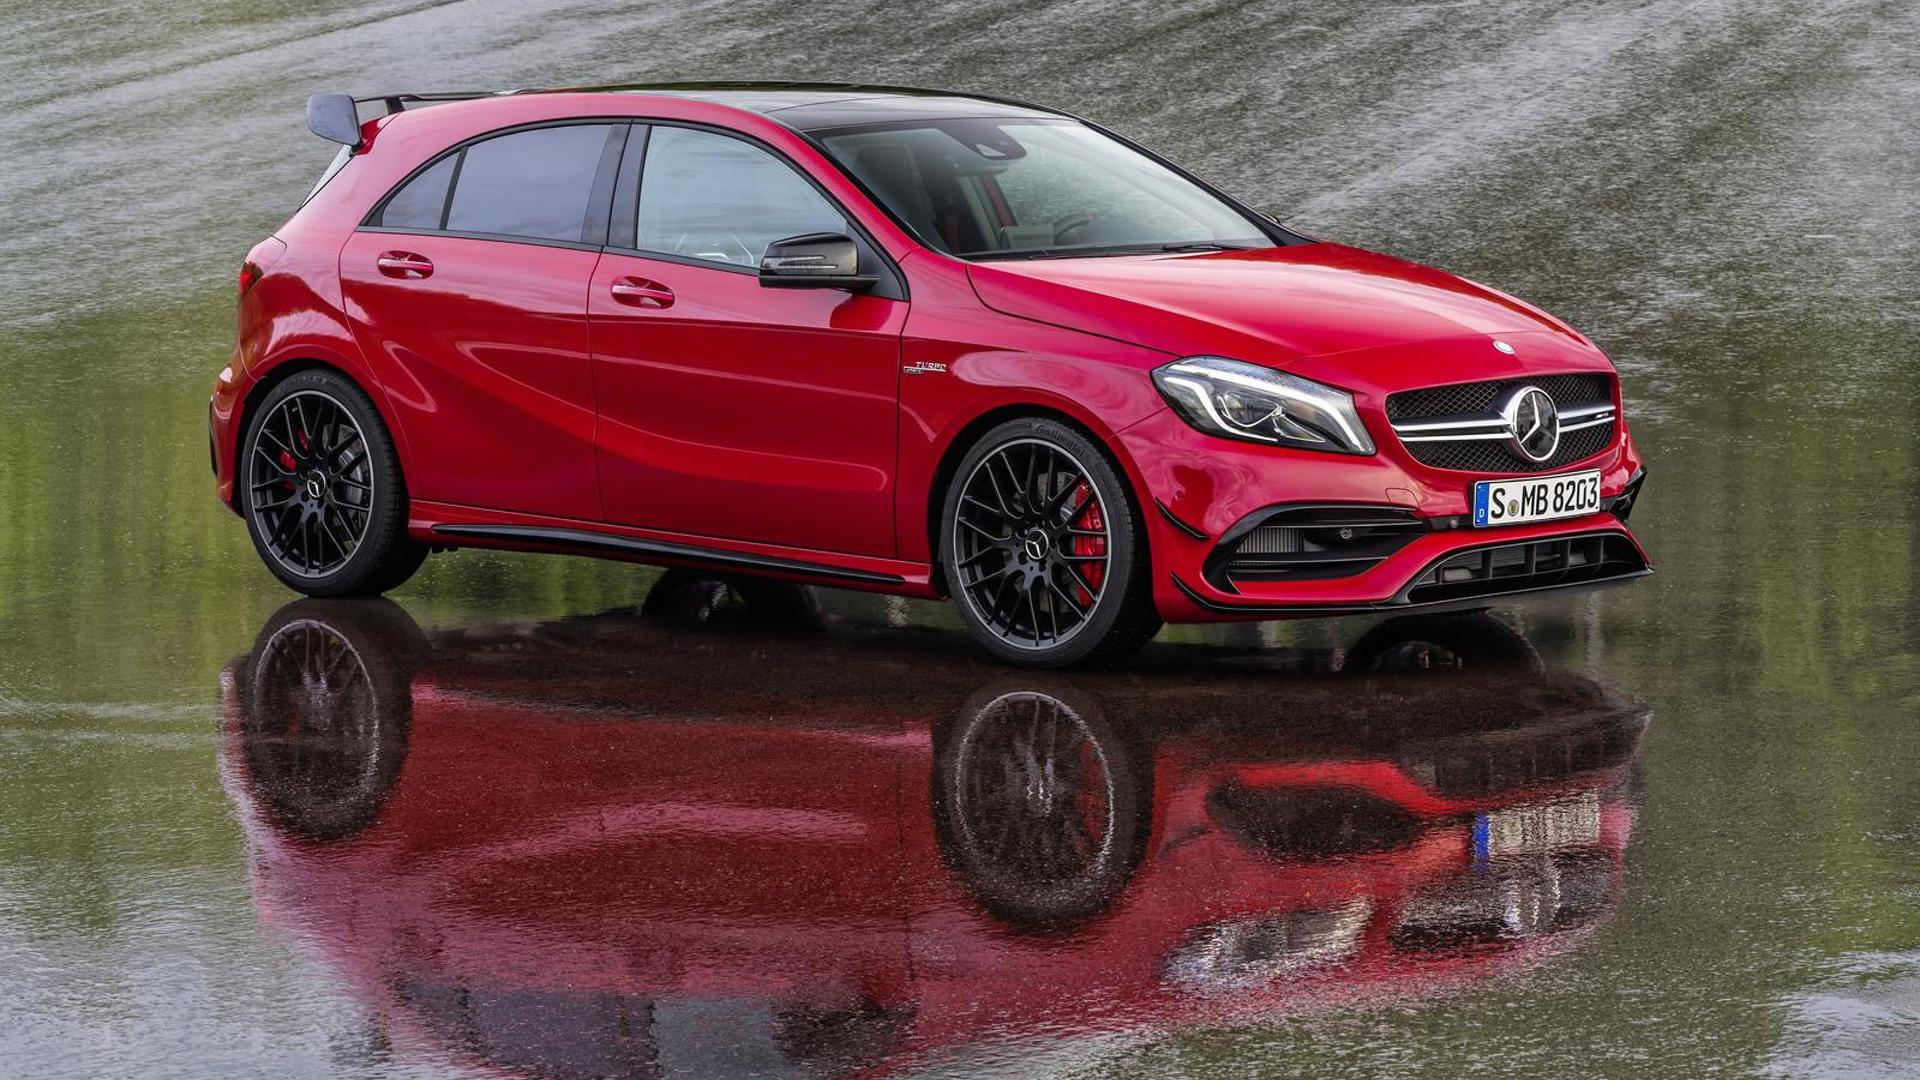 Mercedes Benz Cla 45 Amg And Gla 45 Amg To Get A45 Amg S Power Boost